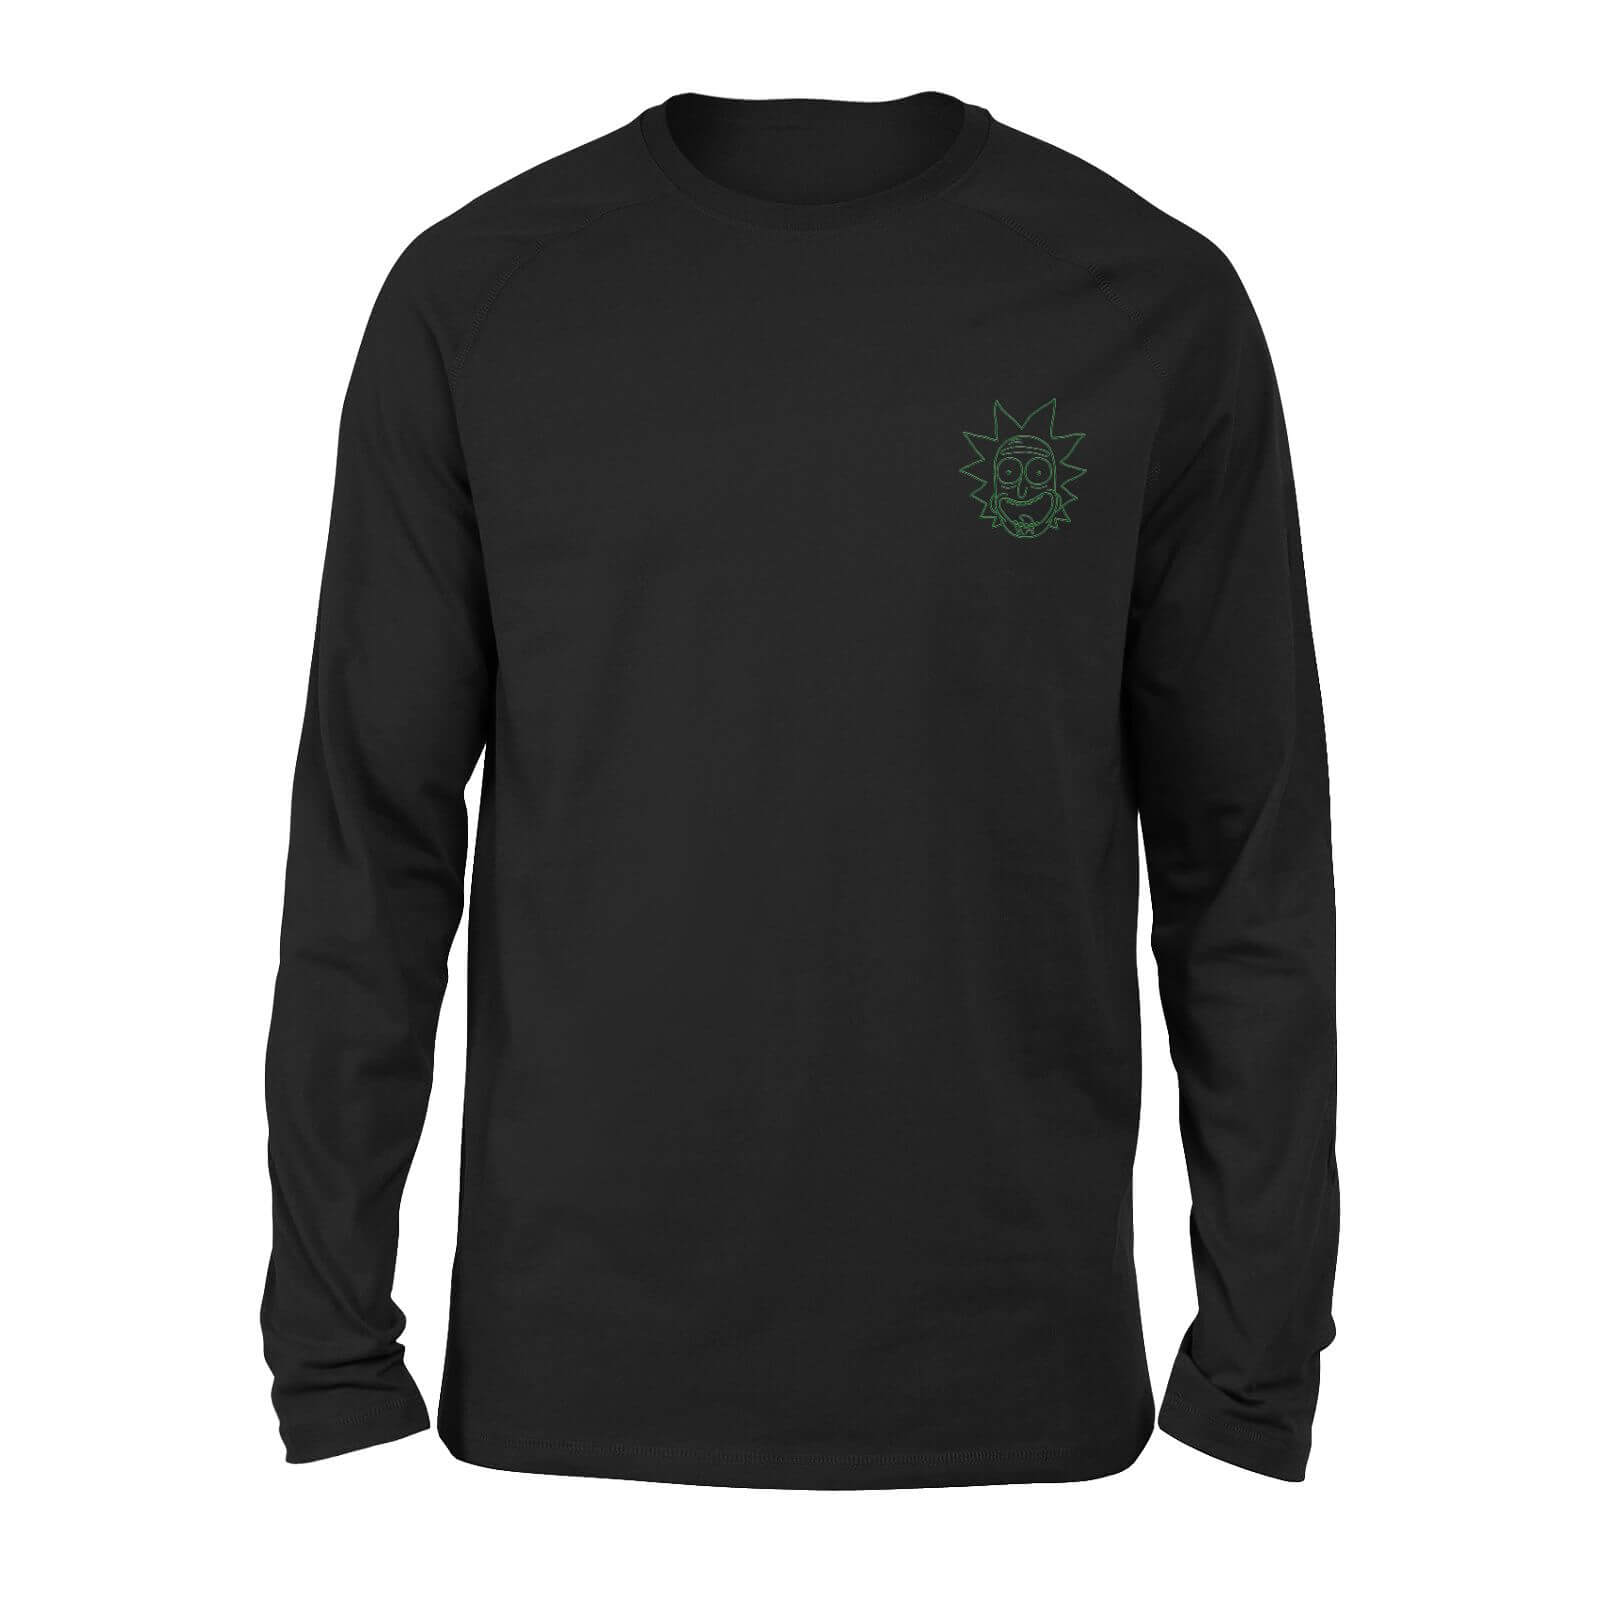 Rick and Morty Rick Embroidered Unisex Long Sleeved T-Shirt - Black - S de Rick and Morty